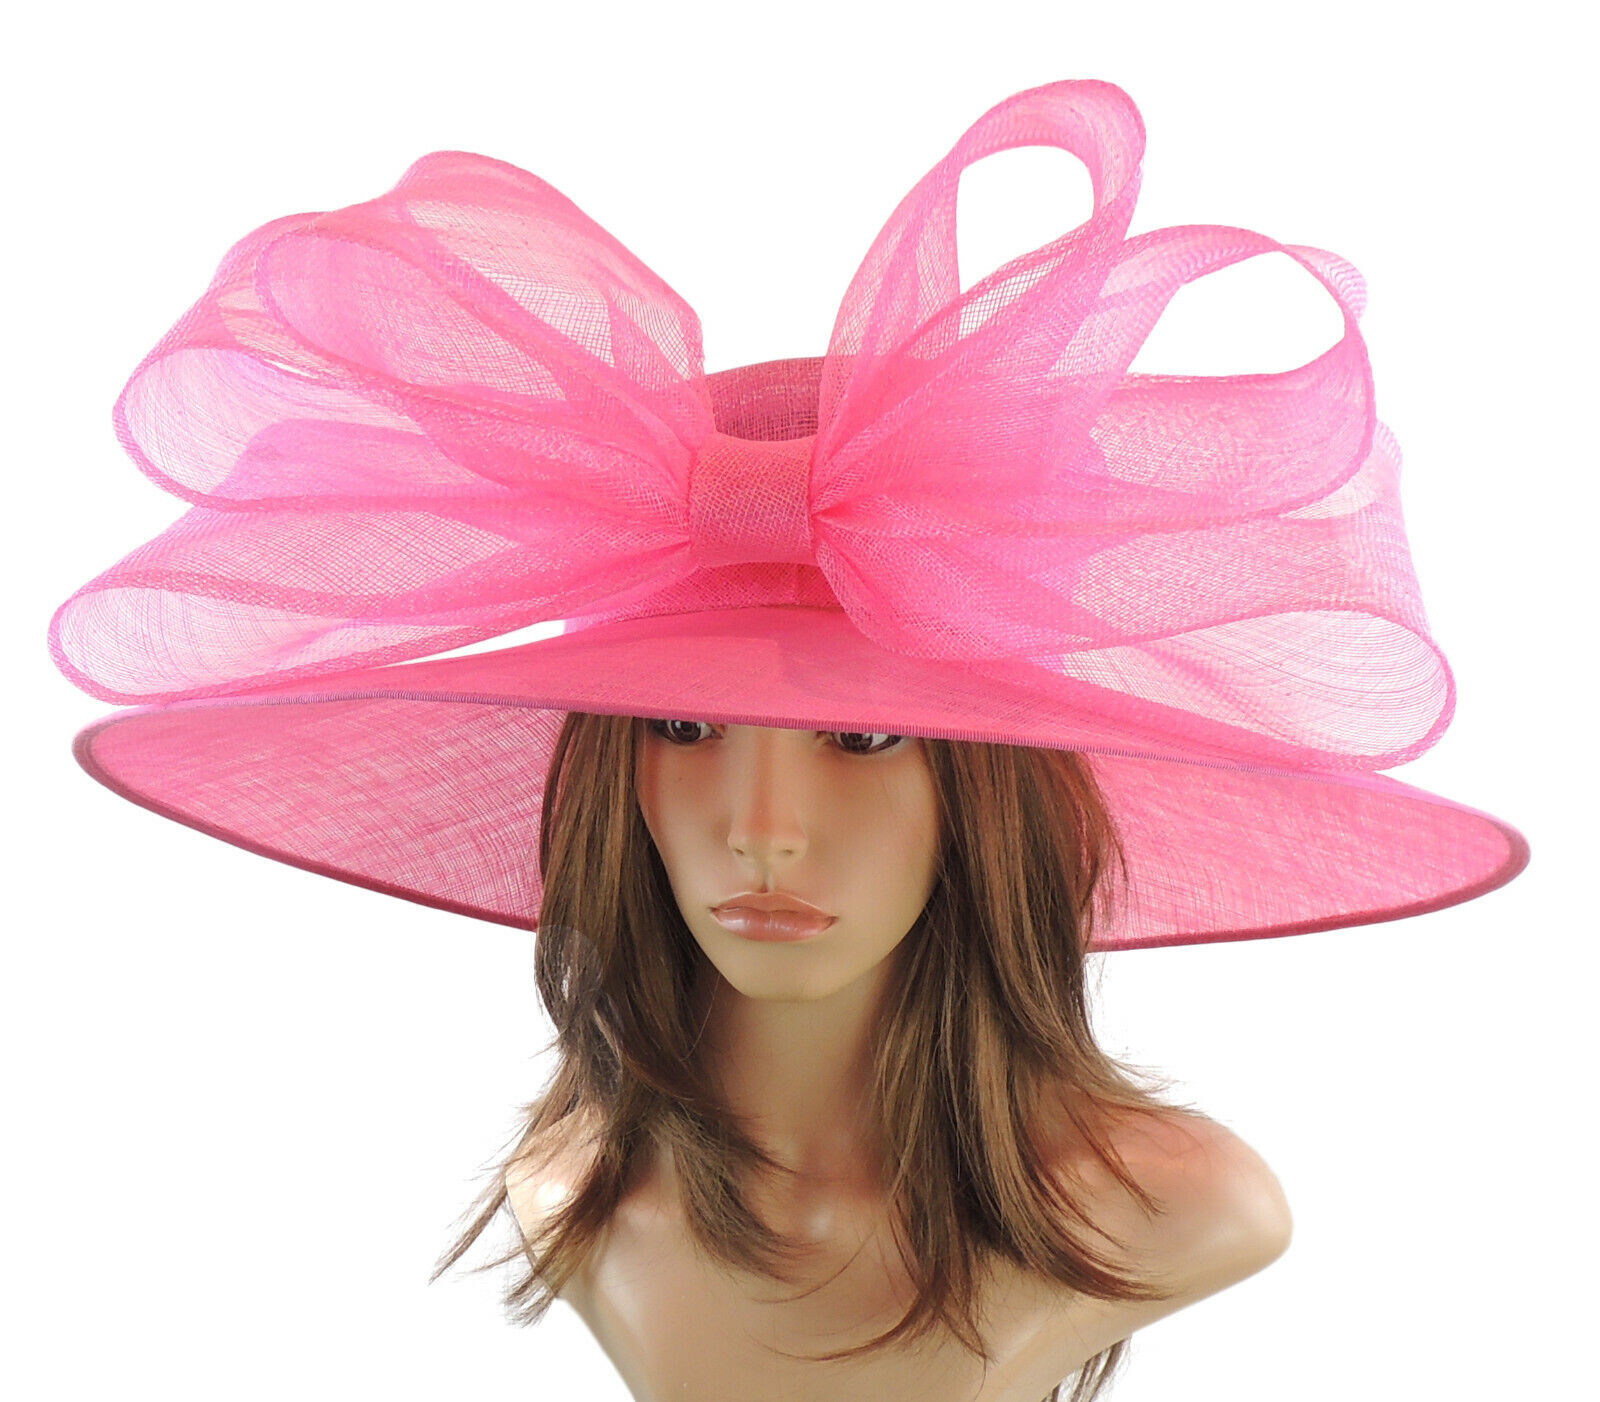 Hot Pink Large Ascot Hat for Weddings, Ascot, Derby in many colors HM3